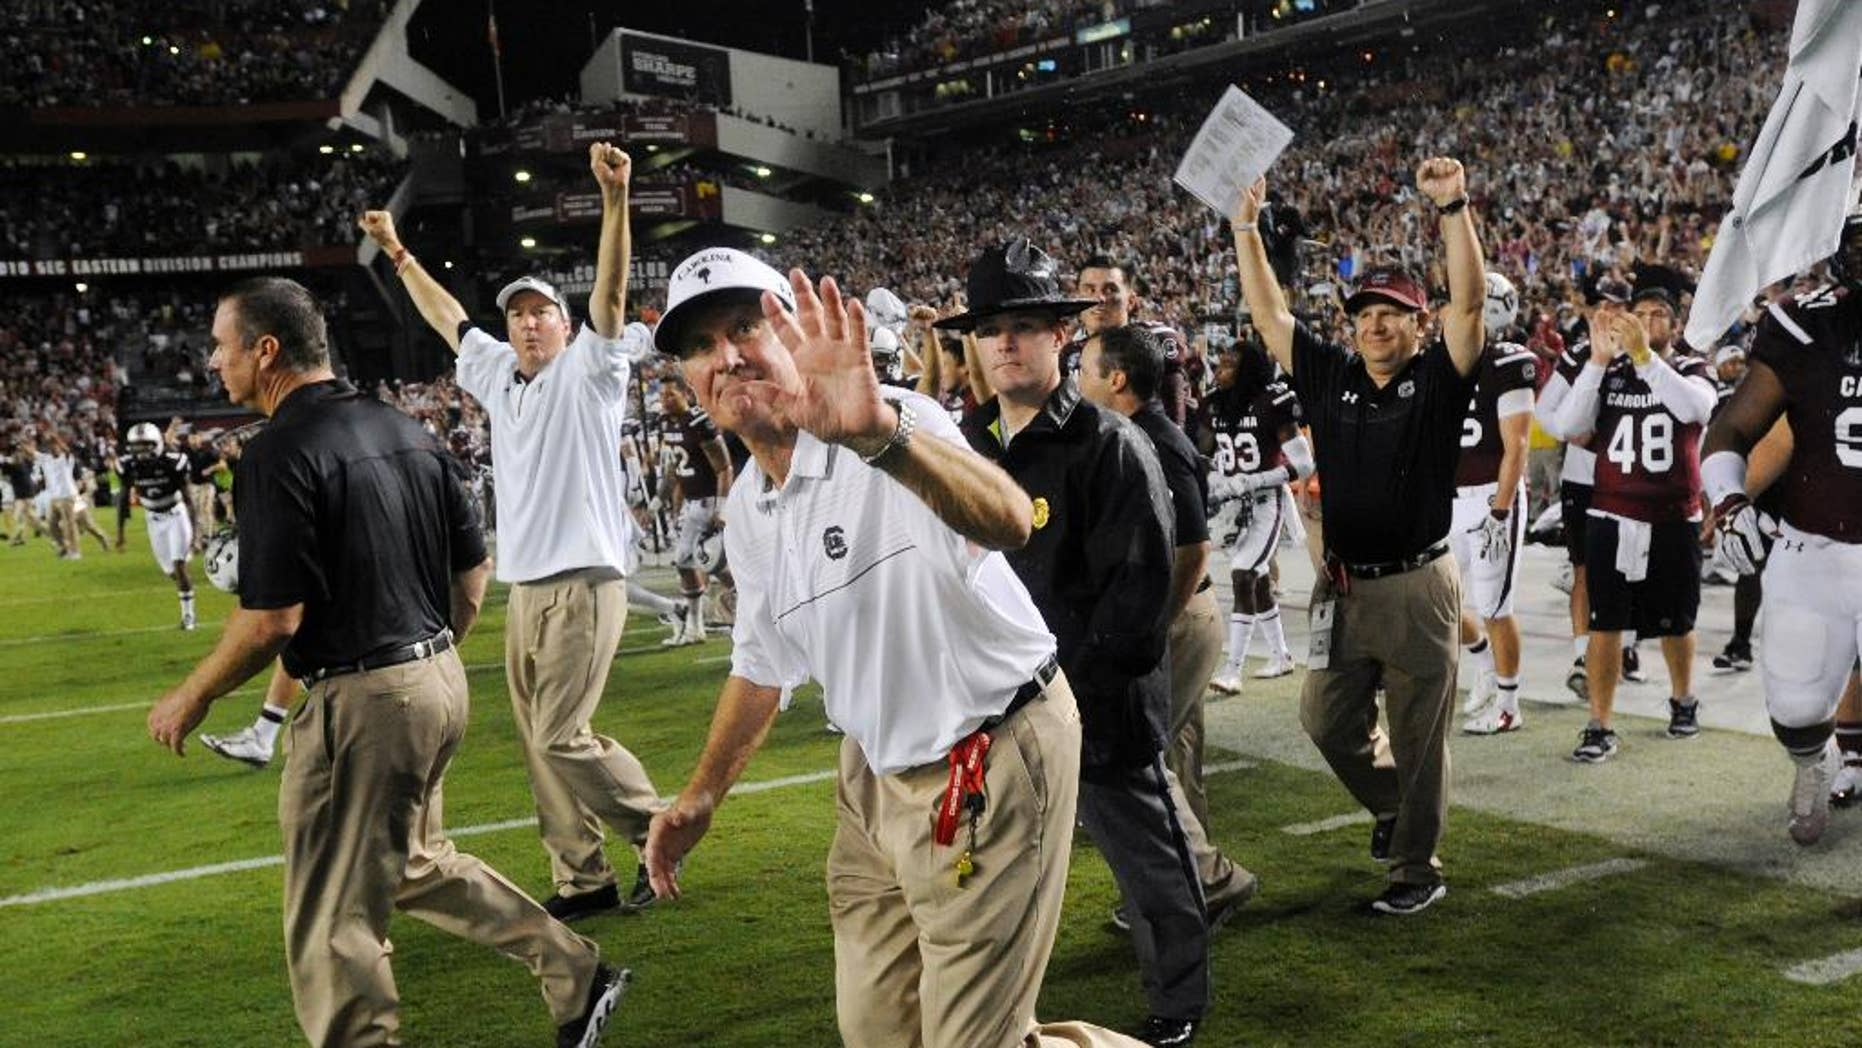 South Carolina head coach Steve Spurrier waves to fans after defeating Georgia 38-35 in an NCAA college football game on Saturday, Sept. 13, 2014, in Columbia, S.C. (AP Photo/Rainier Ehrhardt)